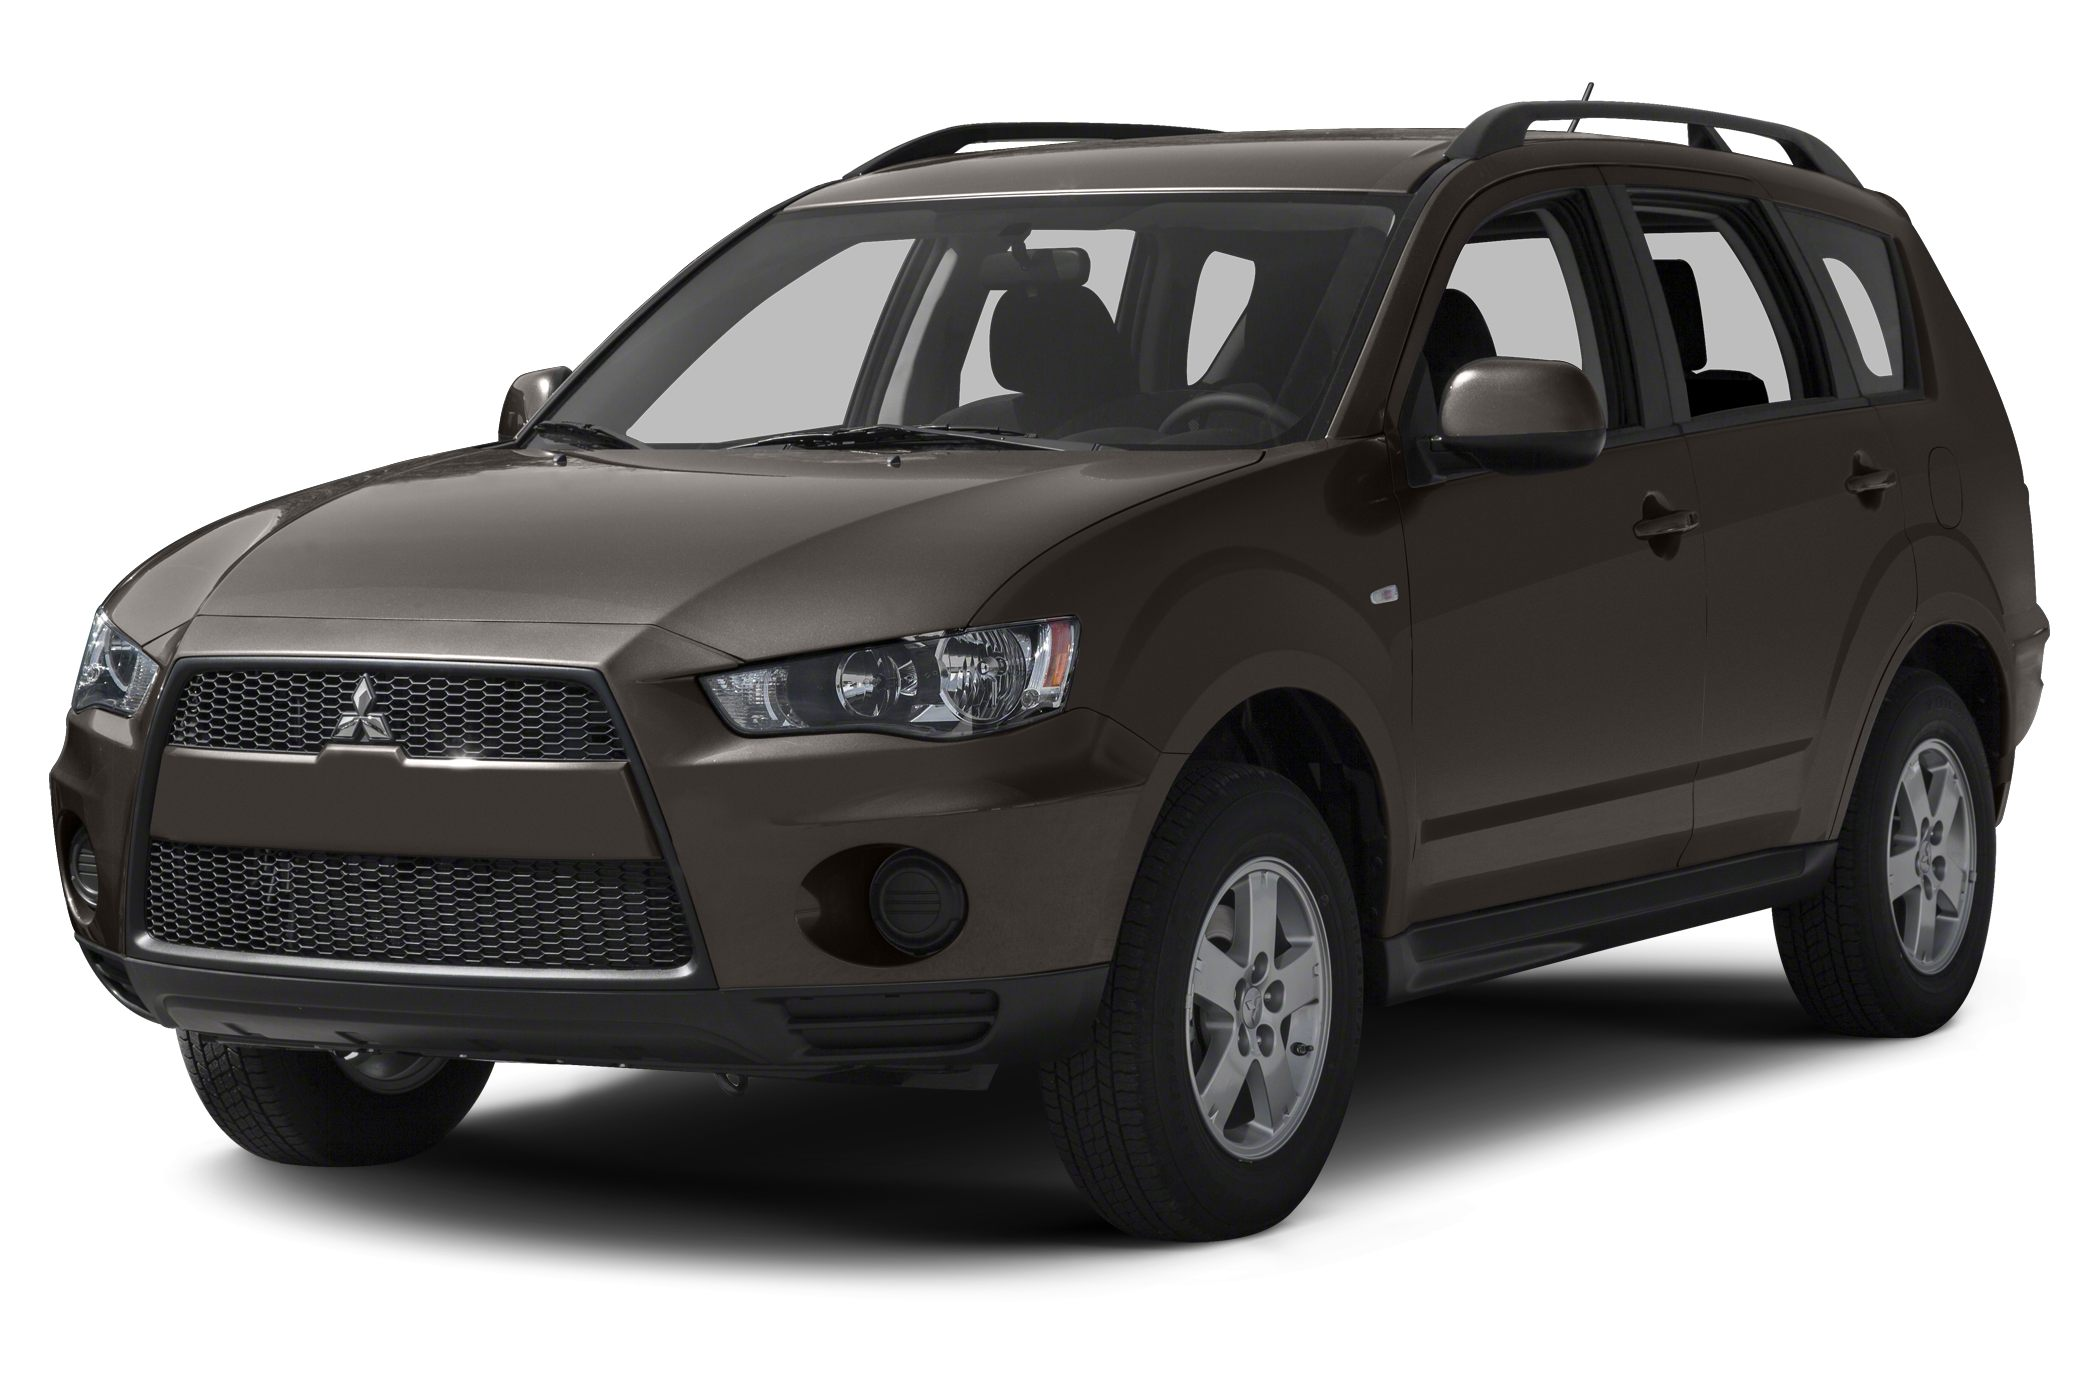 2013 Mitsubishi Outlander Specs And Prices